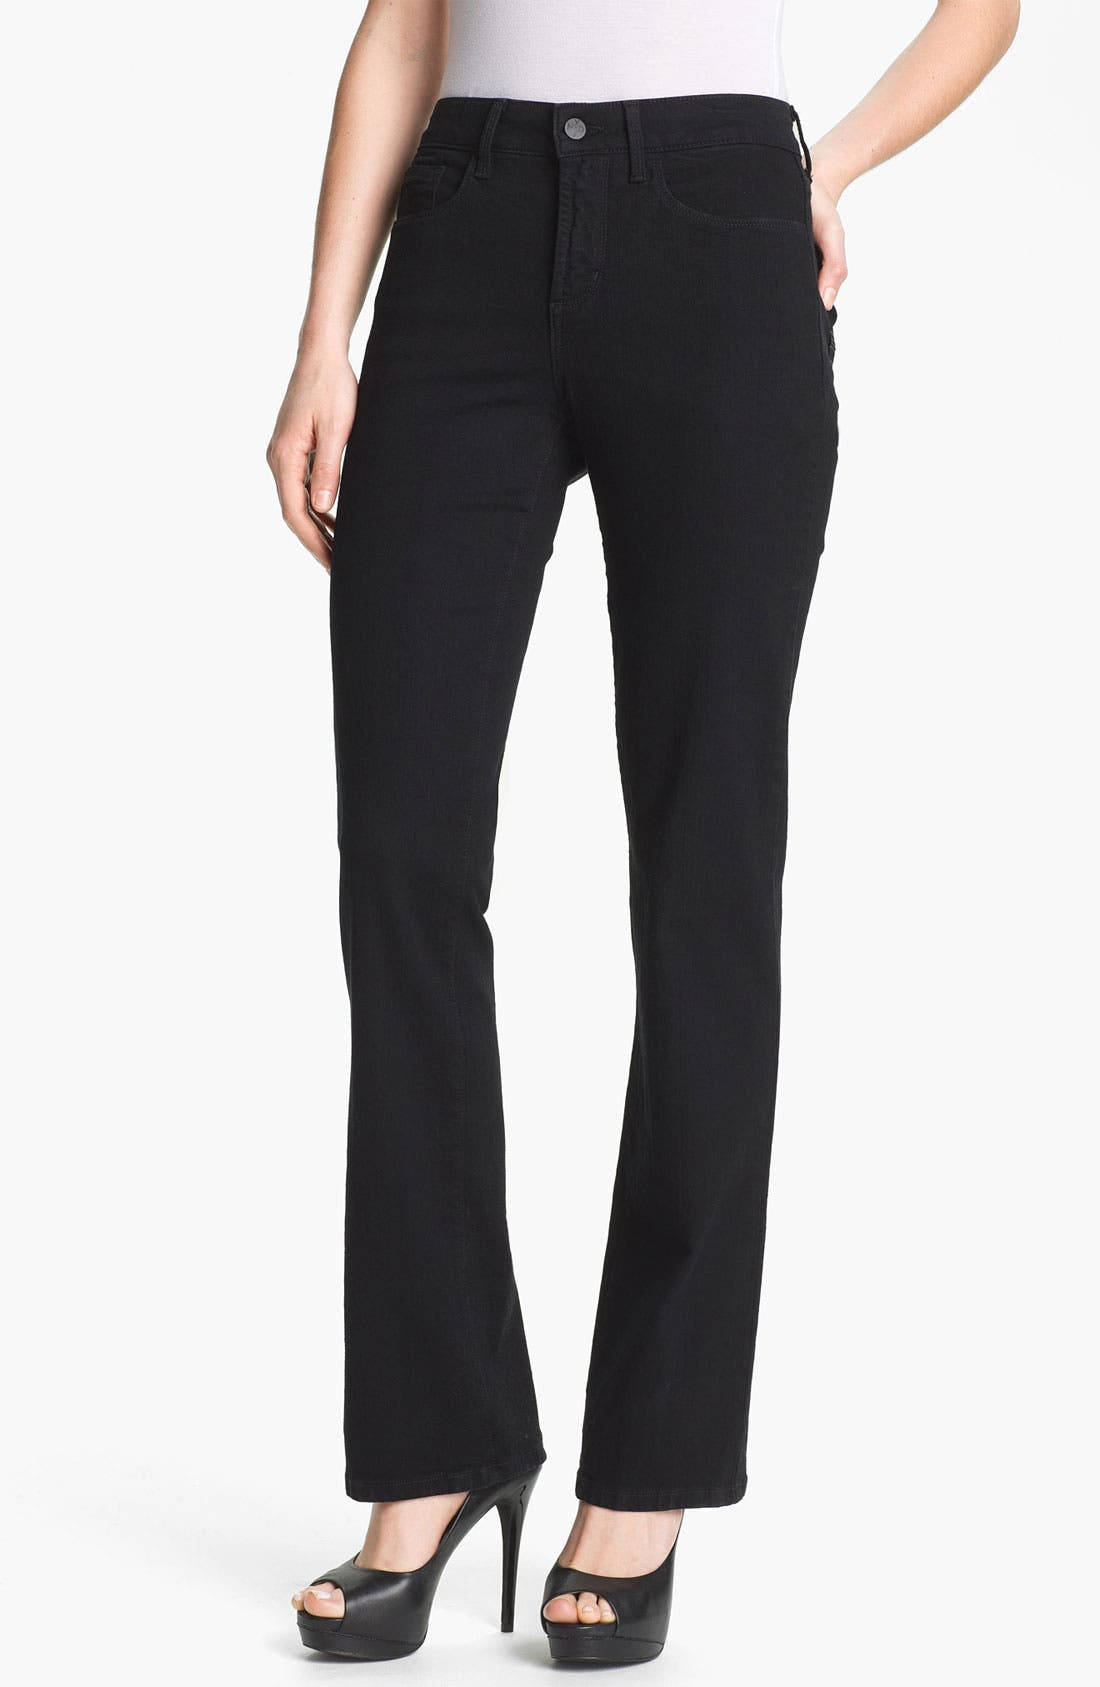 Alternate Image 1 Selected - NYDJ 'Barbara' Embellished Bootcut Stretch Jeans